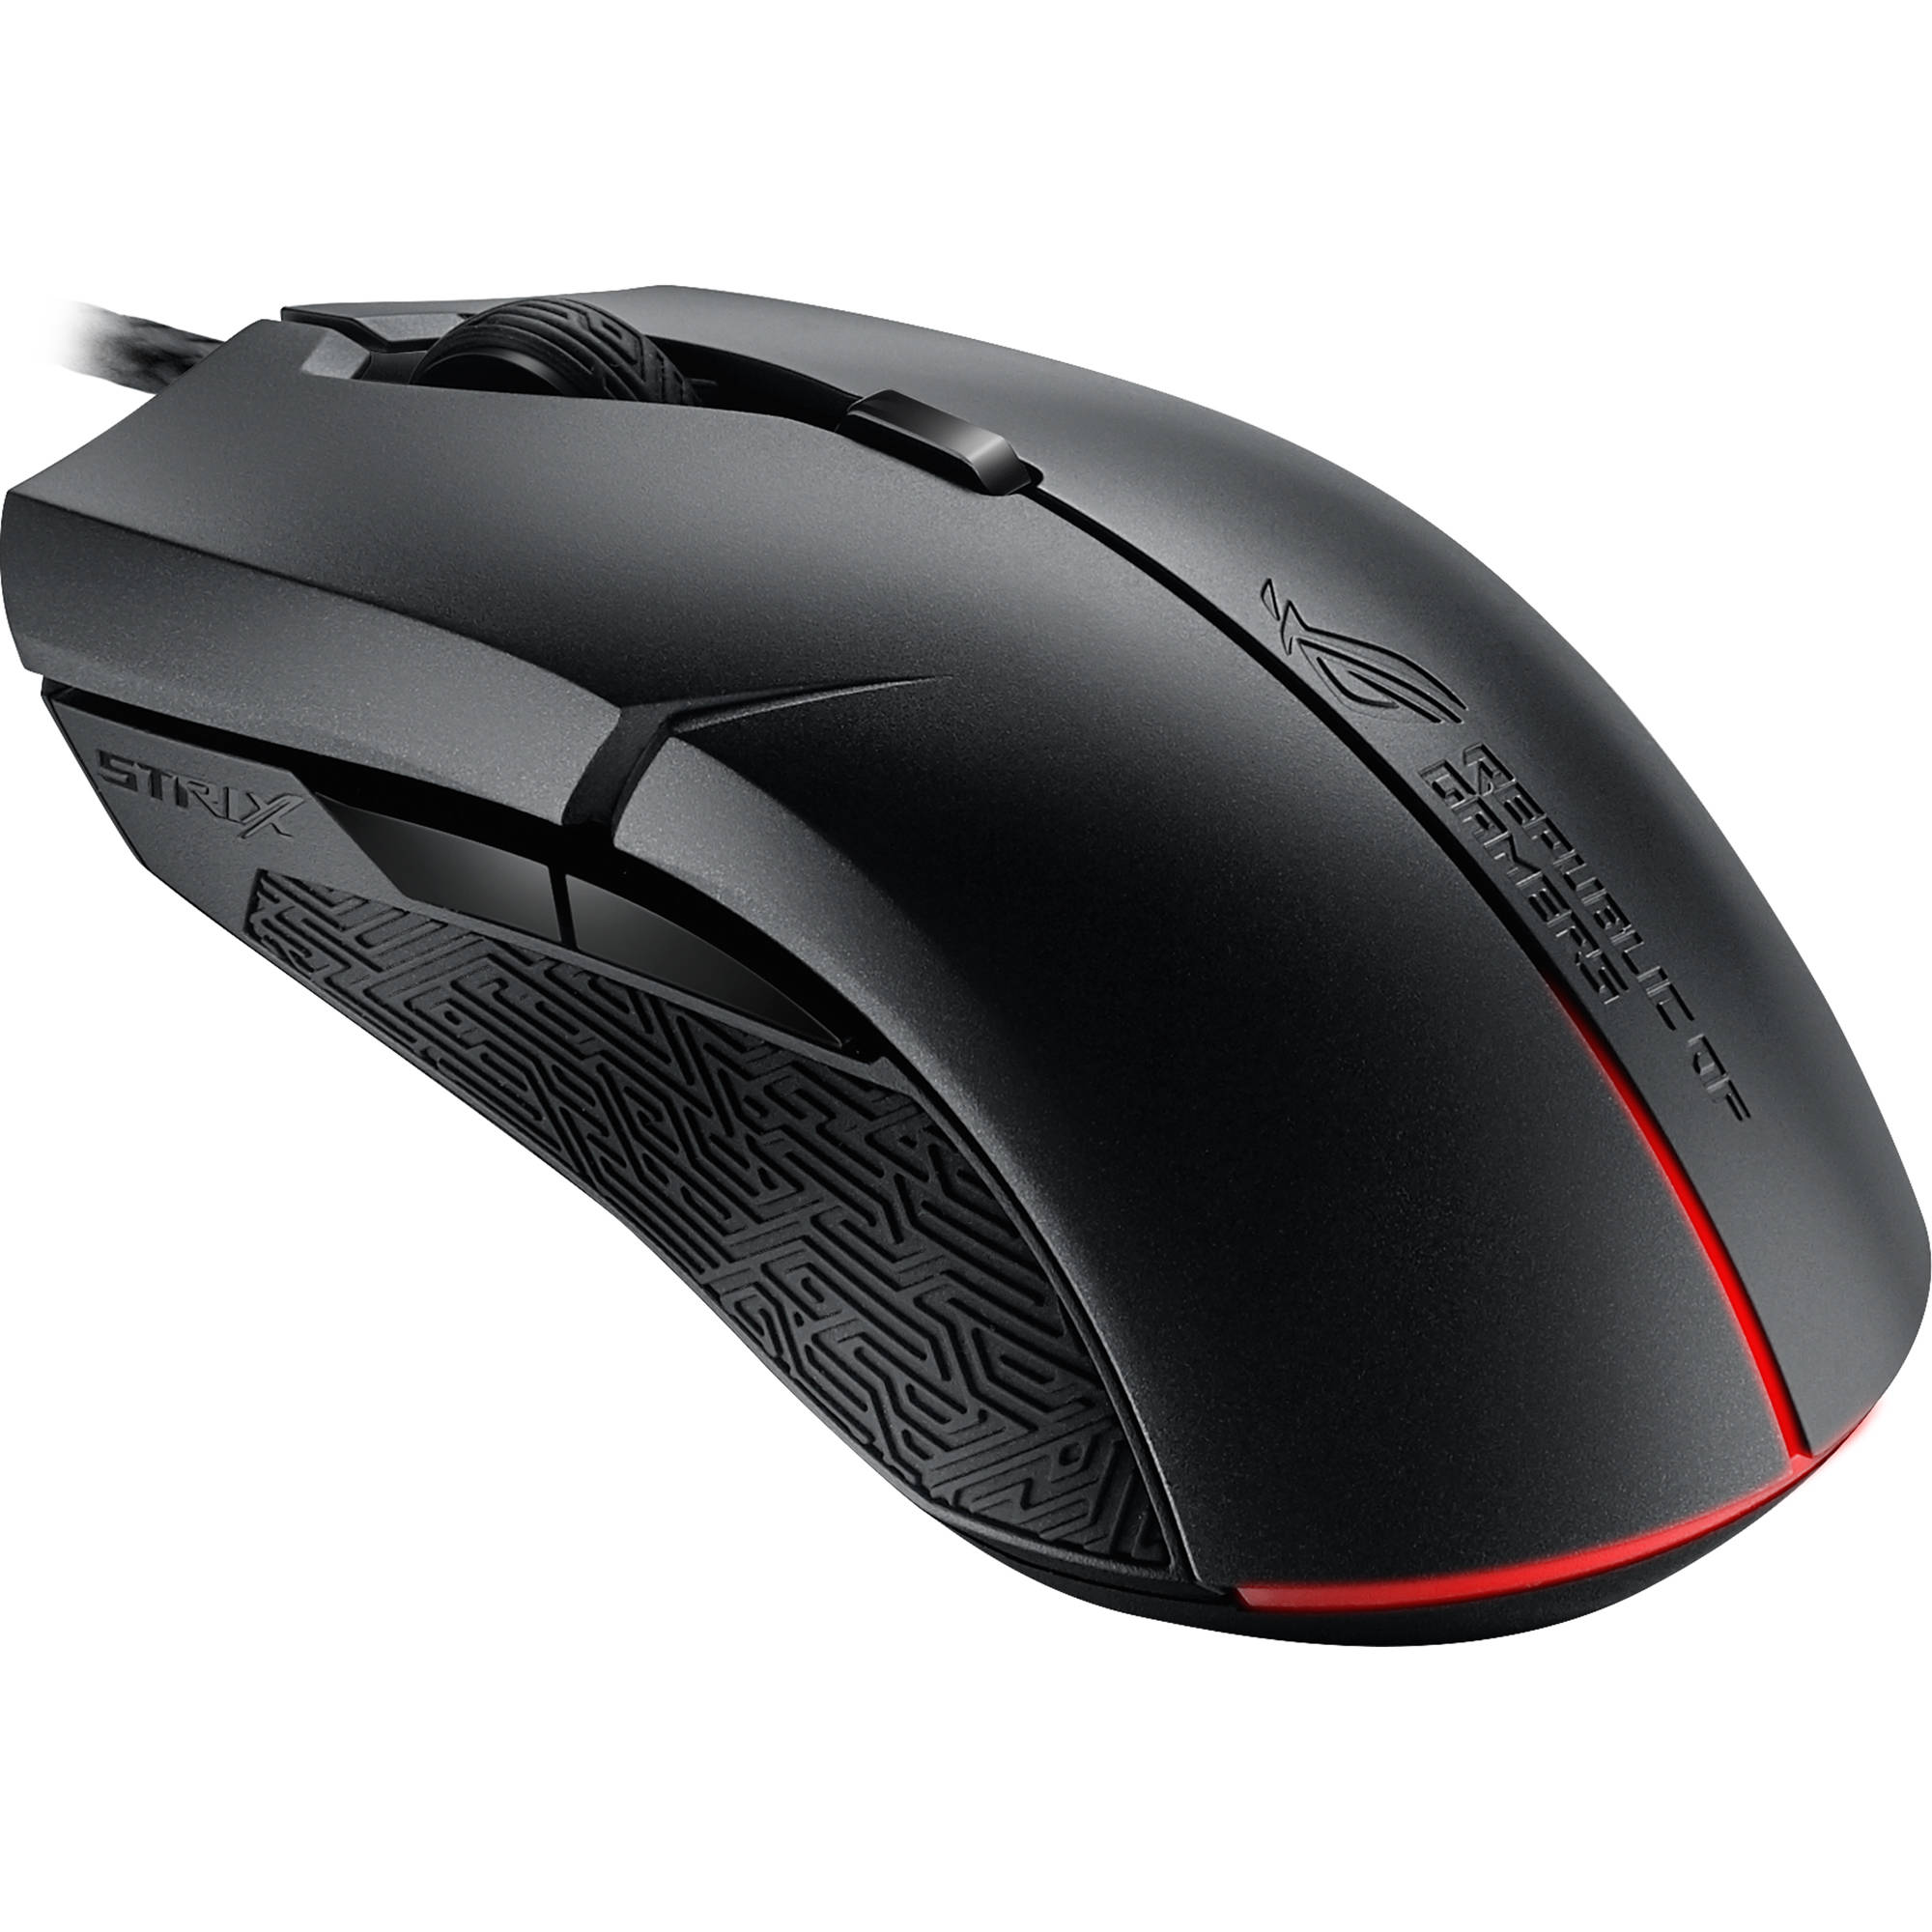 rog gaming mouse